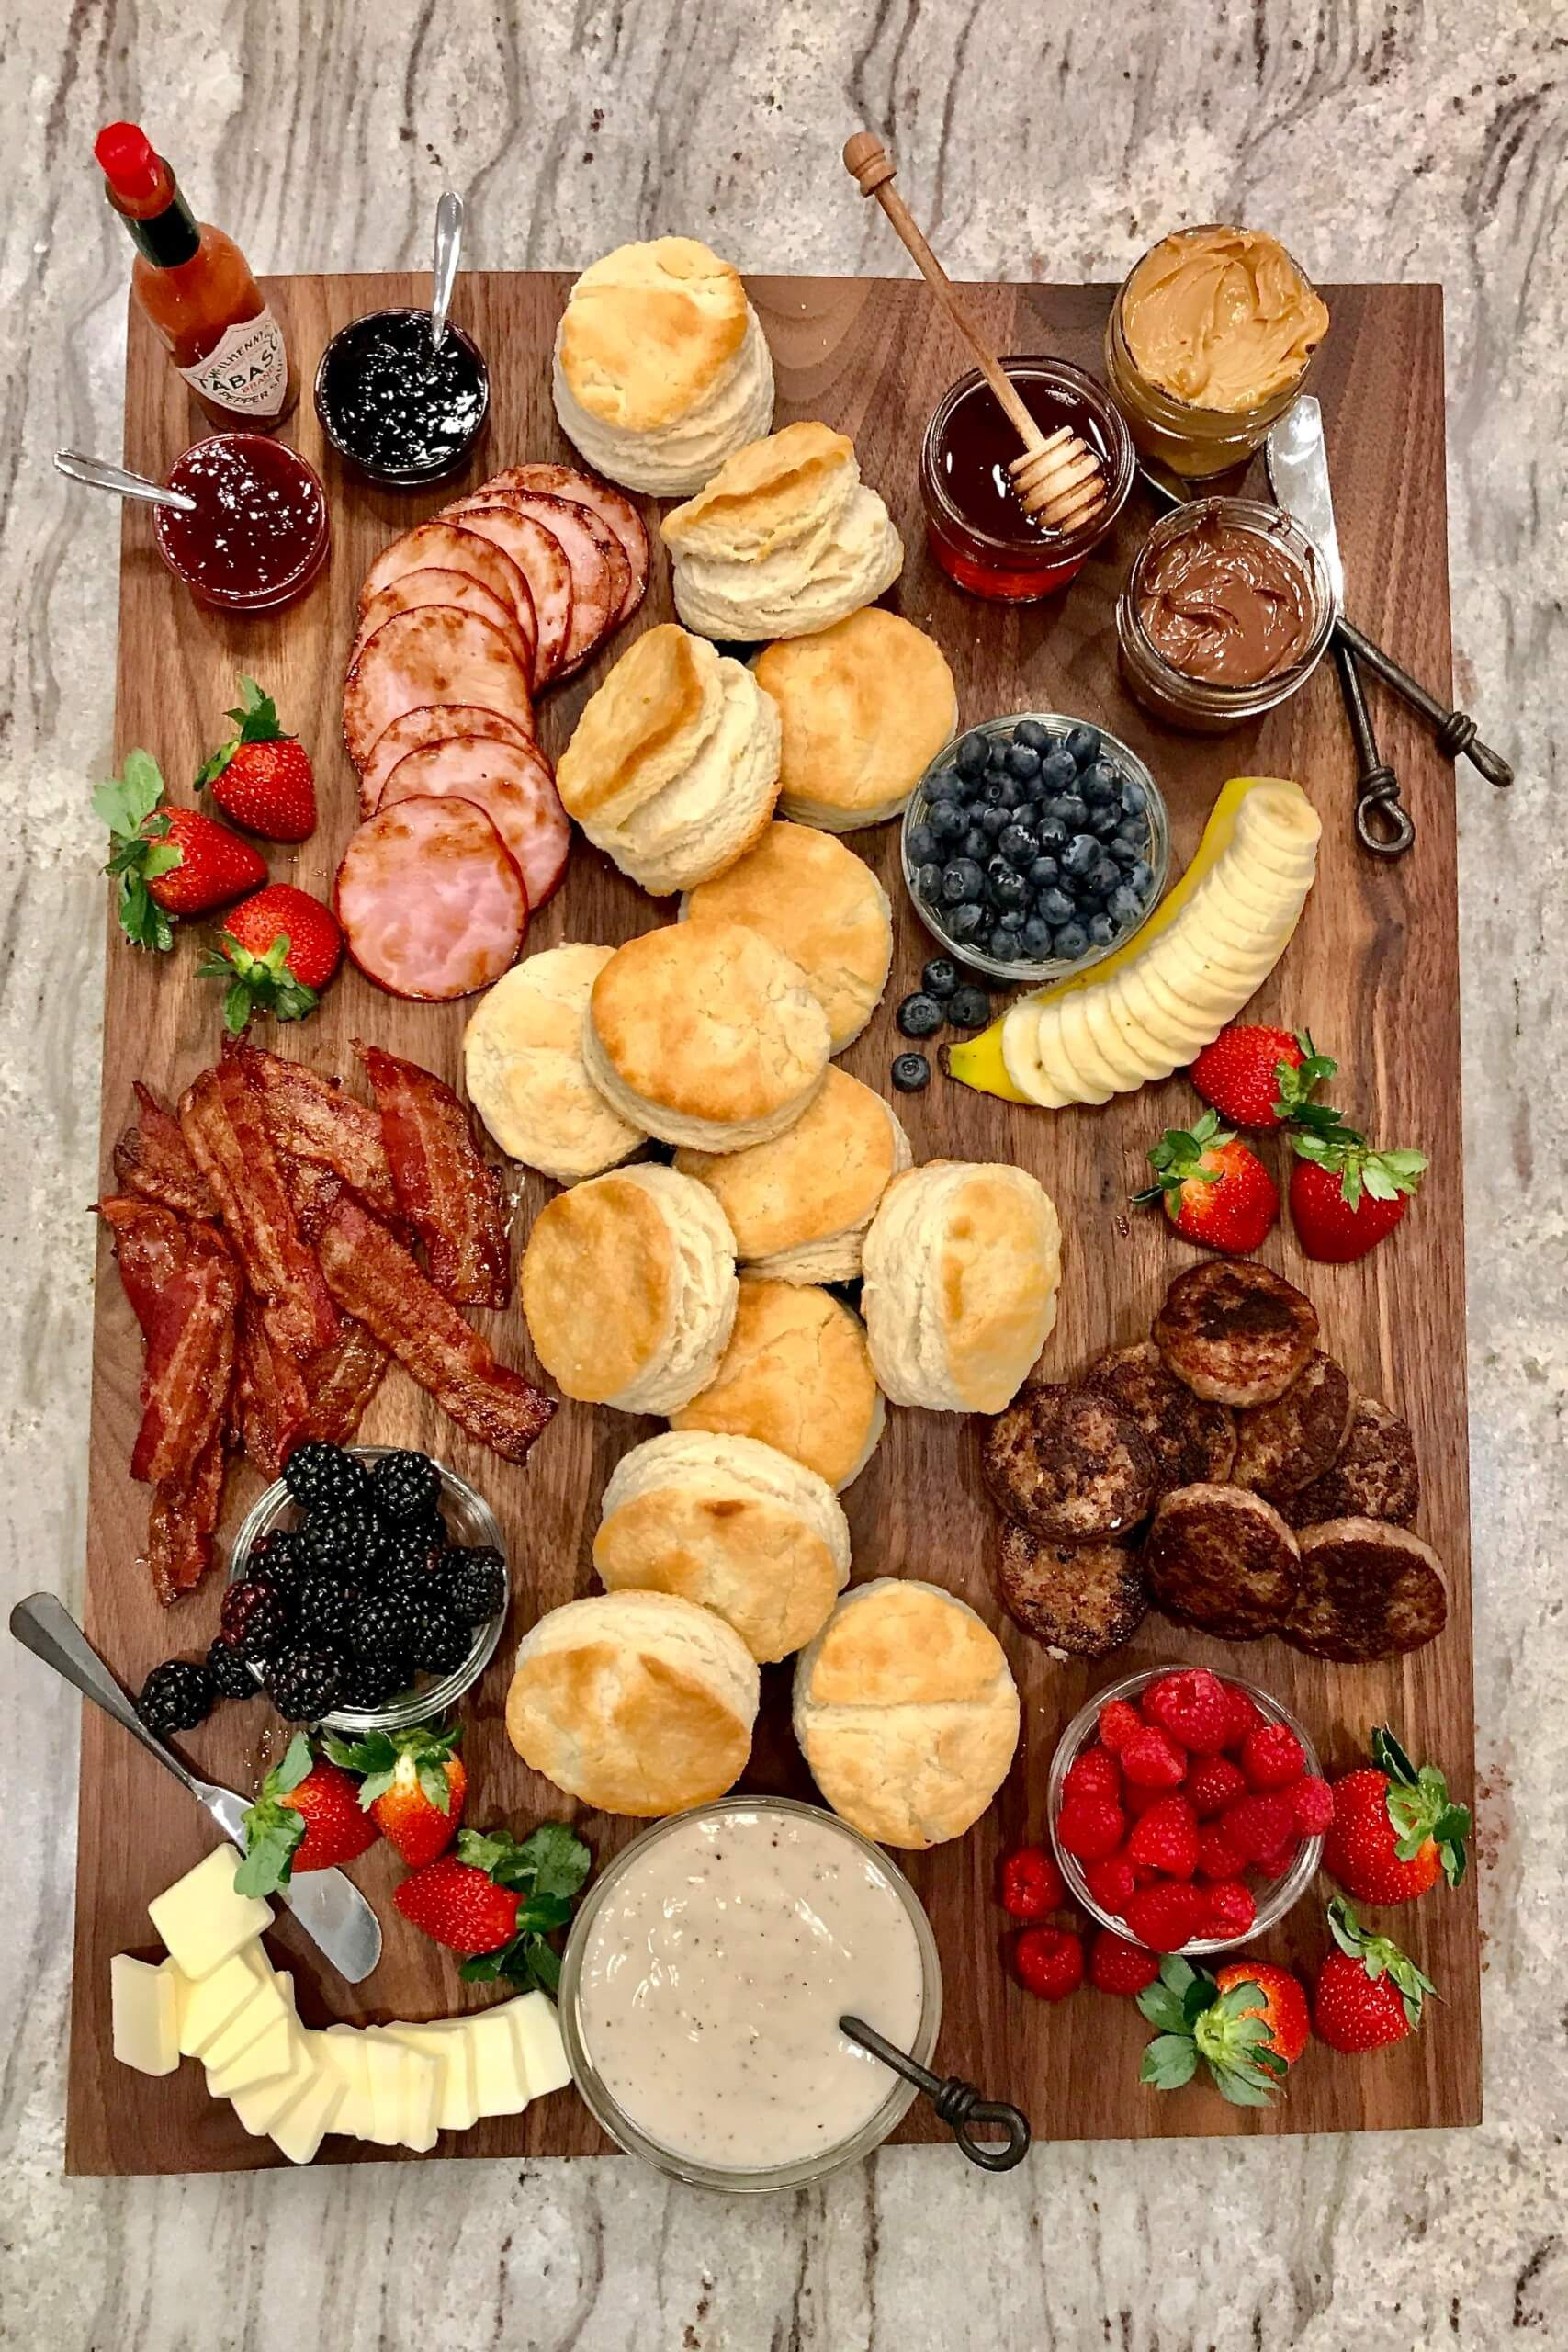 Fix-Your-Own Biscuit Board | The BakerMama